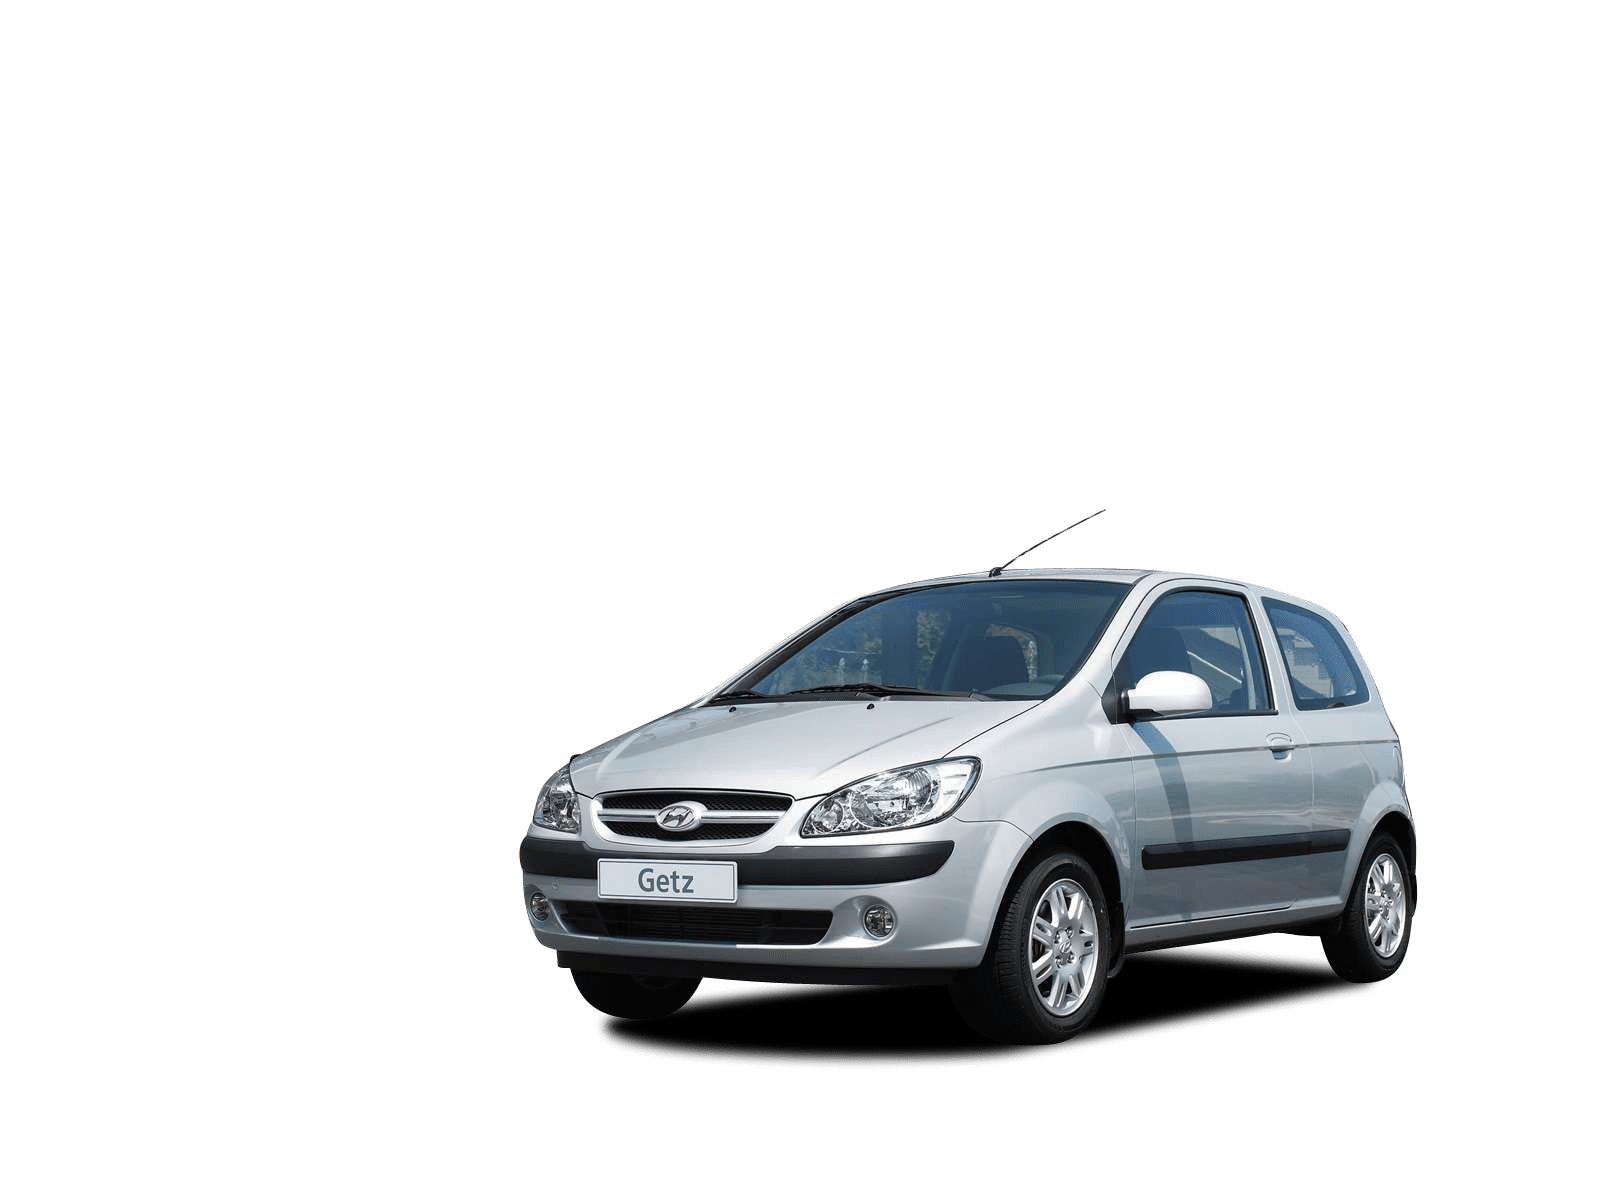 Hyundai Getz: reviews and more about the car